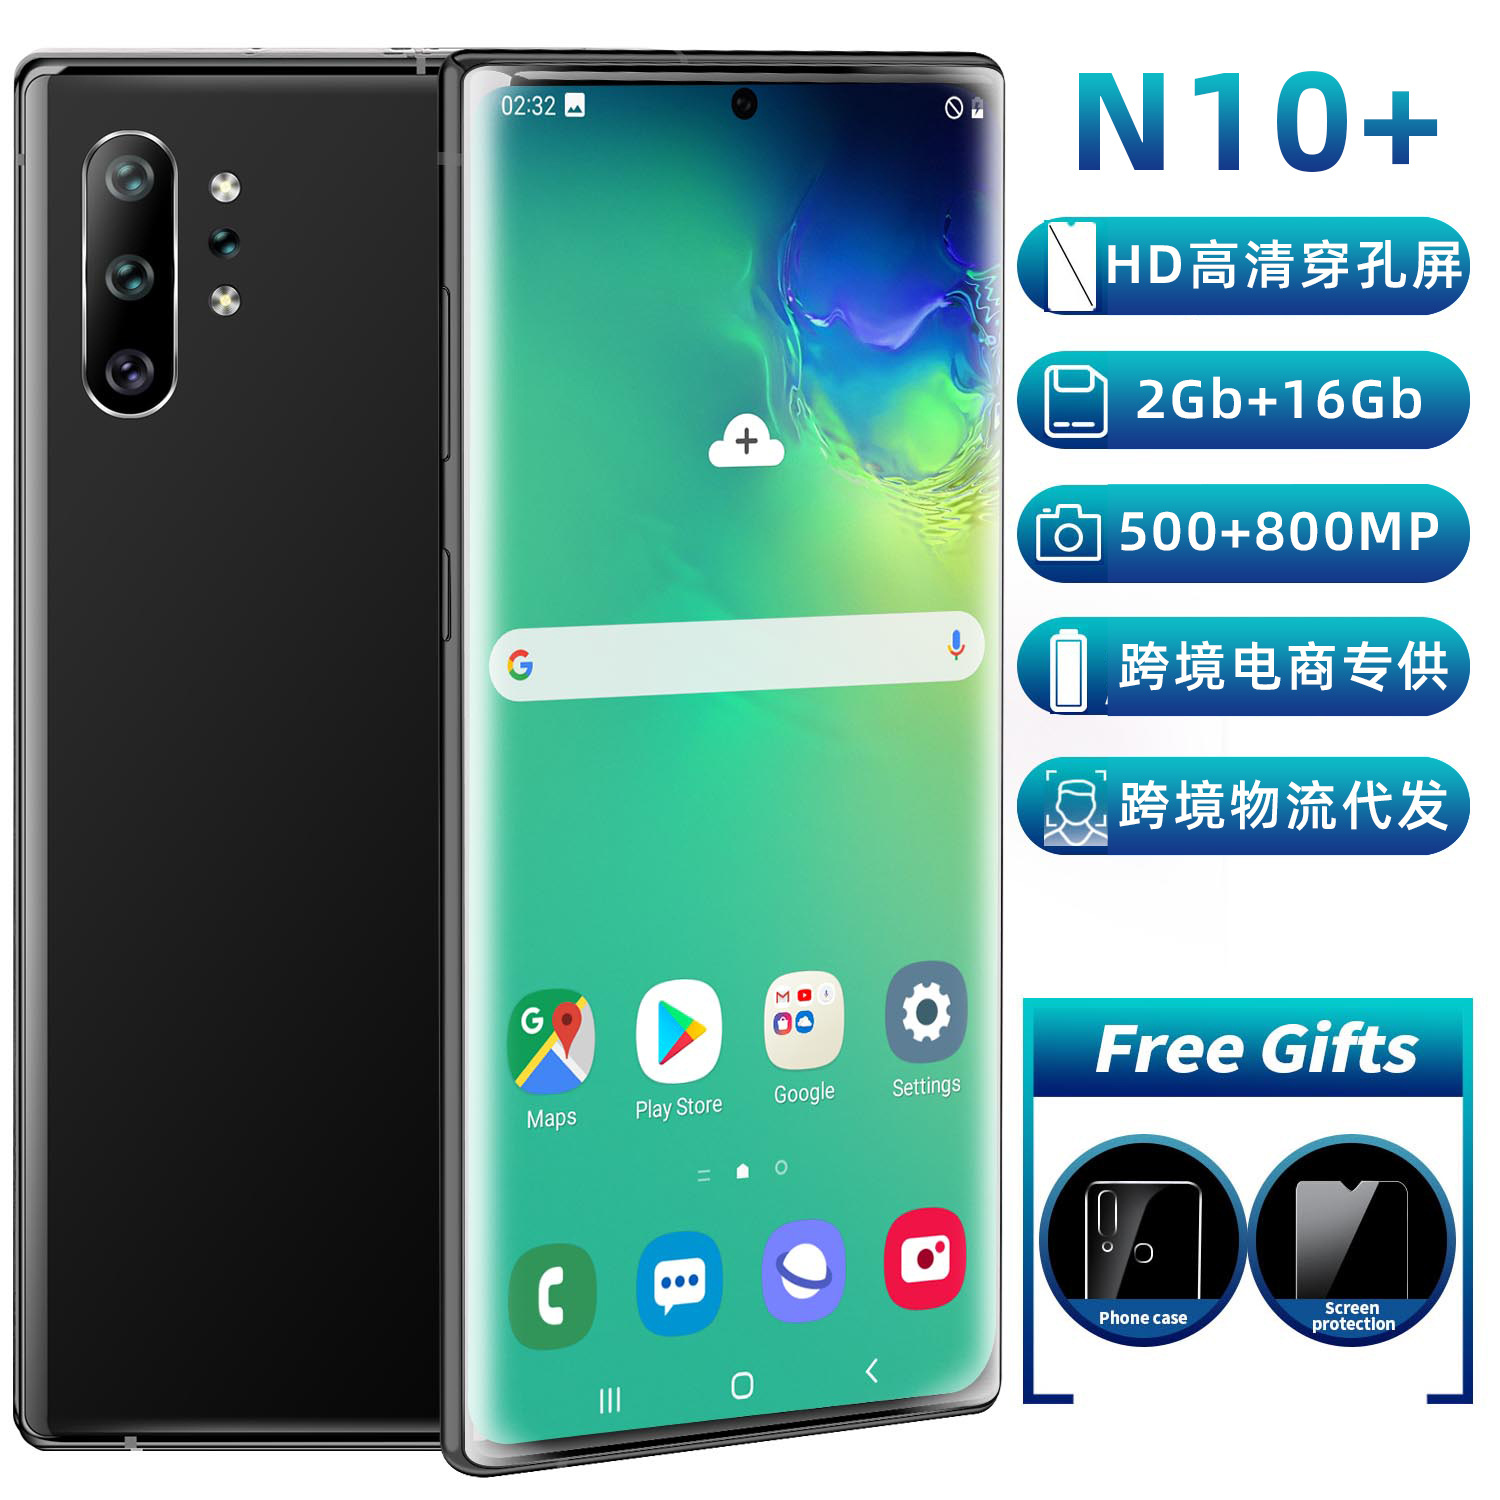 N10 + 6.8 Inch Real Perforated Curved Surface Hd Large Screen Android Smartphone 2 + 16 Large Memory